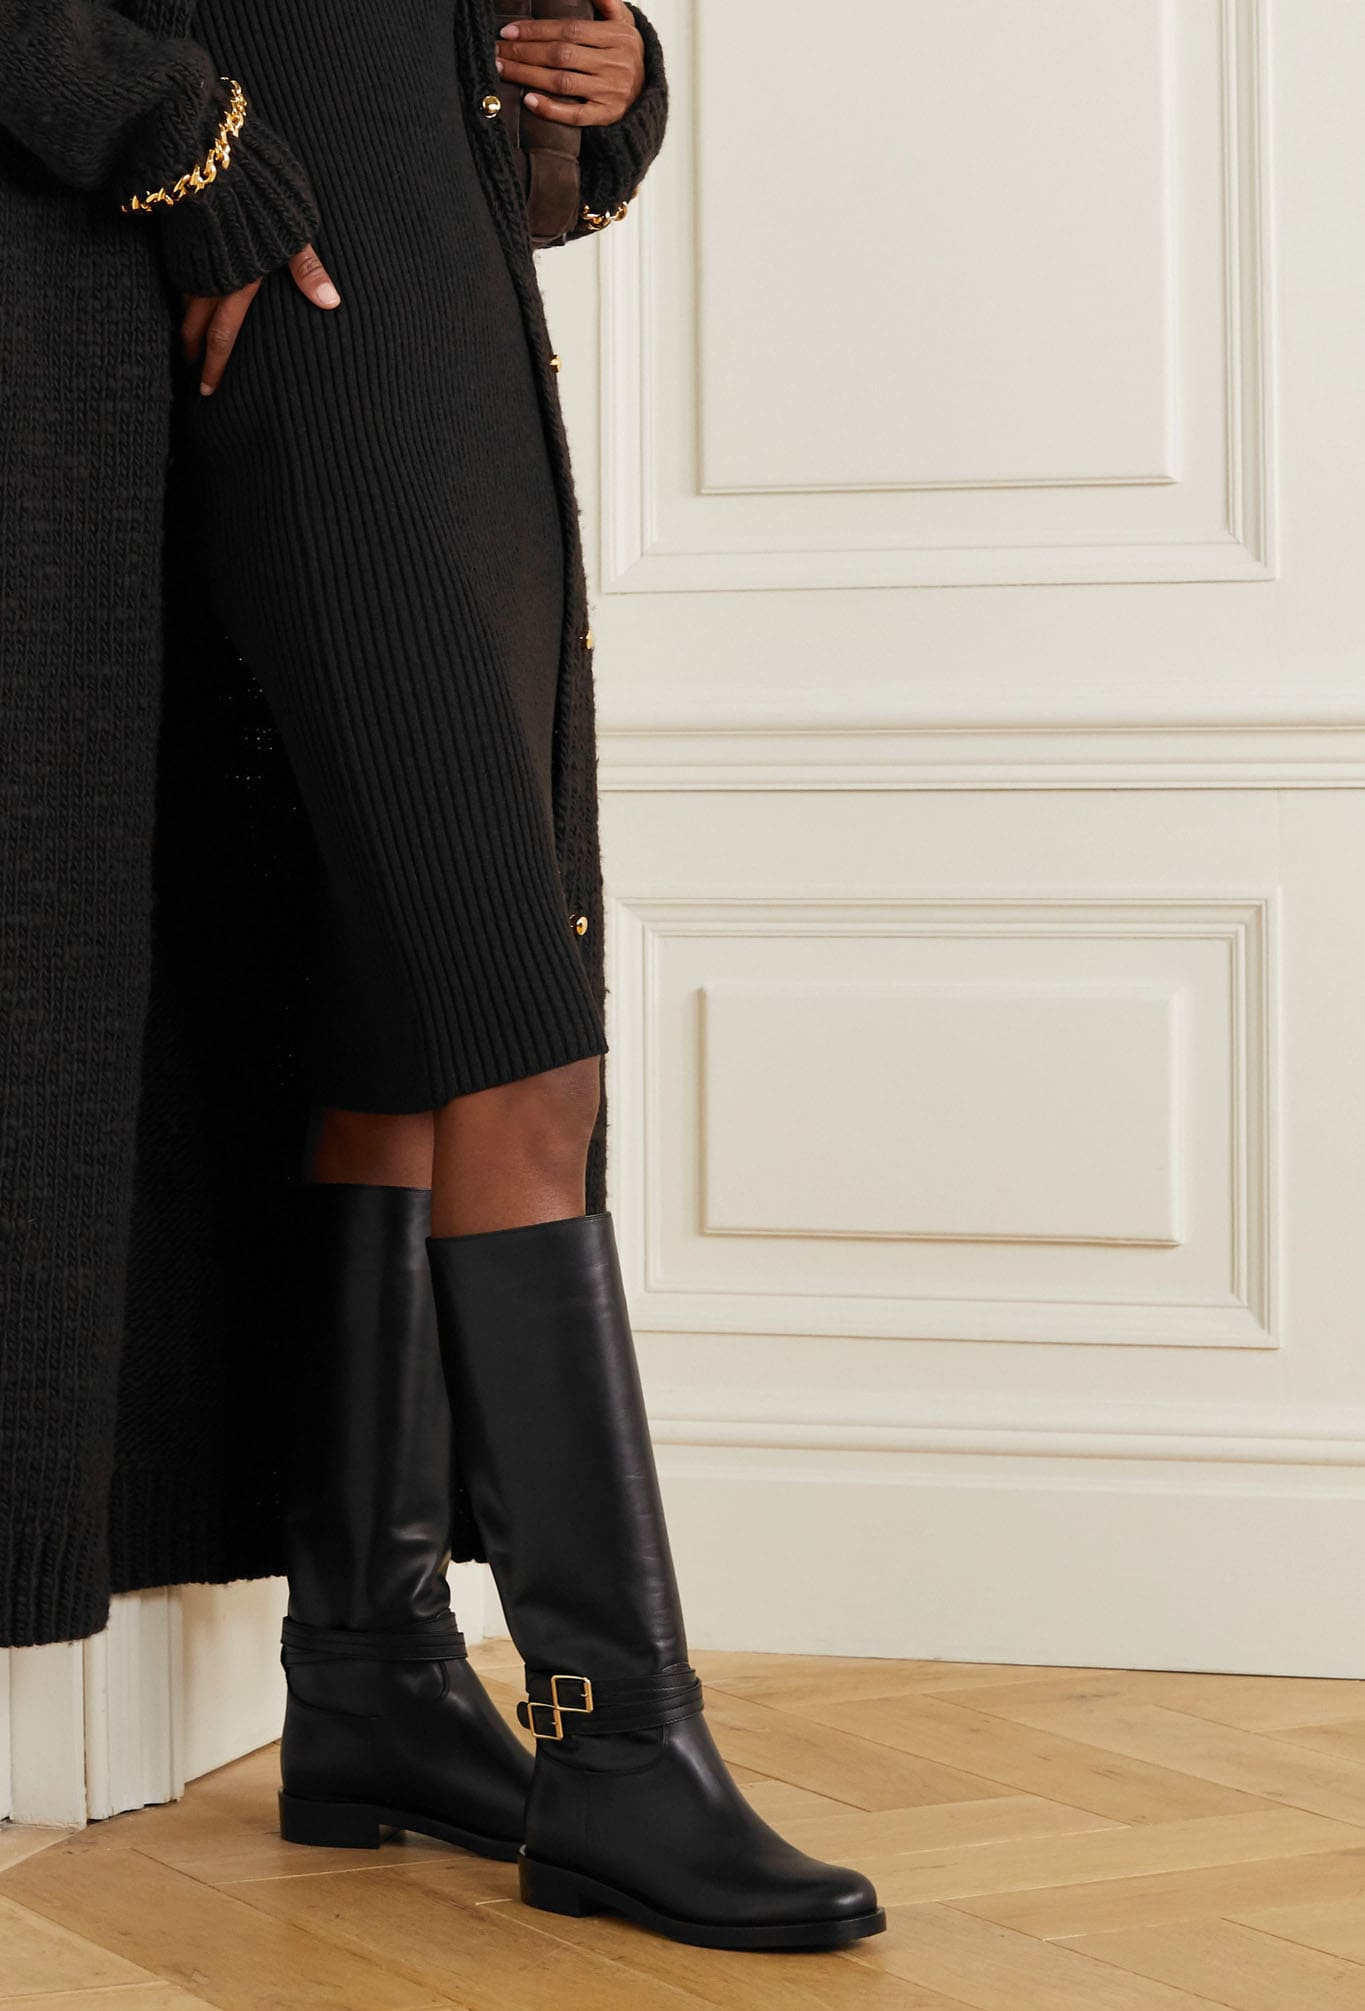 Create a chic monochrome look with black Gianvito Rossi knee boots, leggings, and sweater